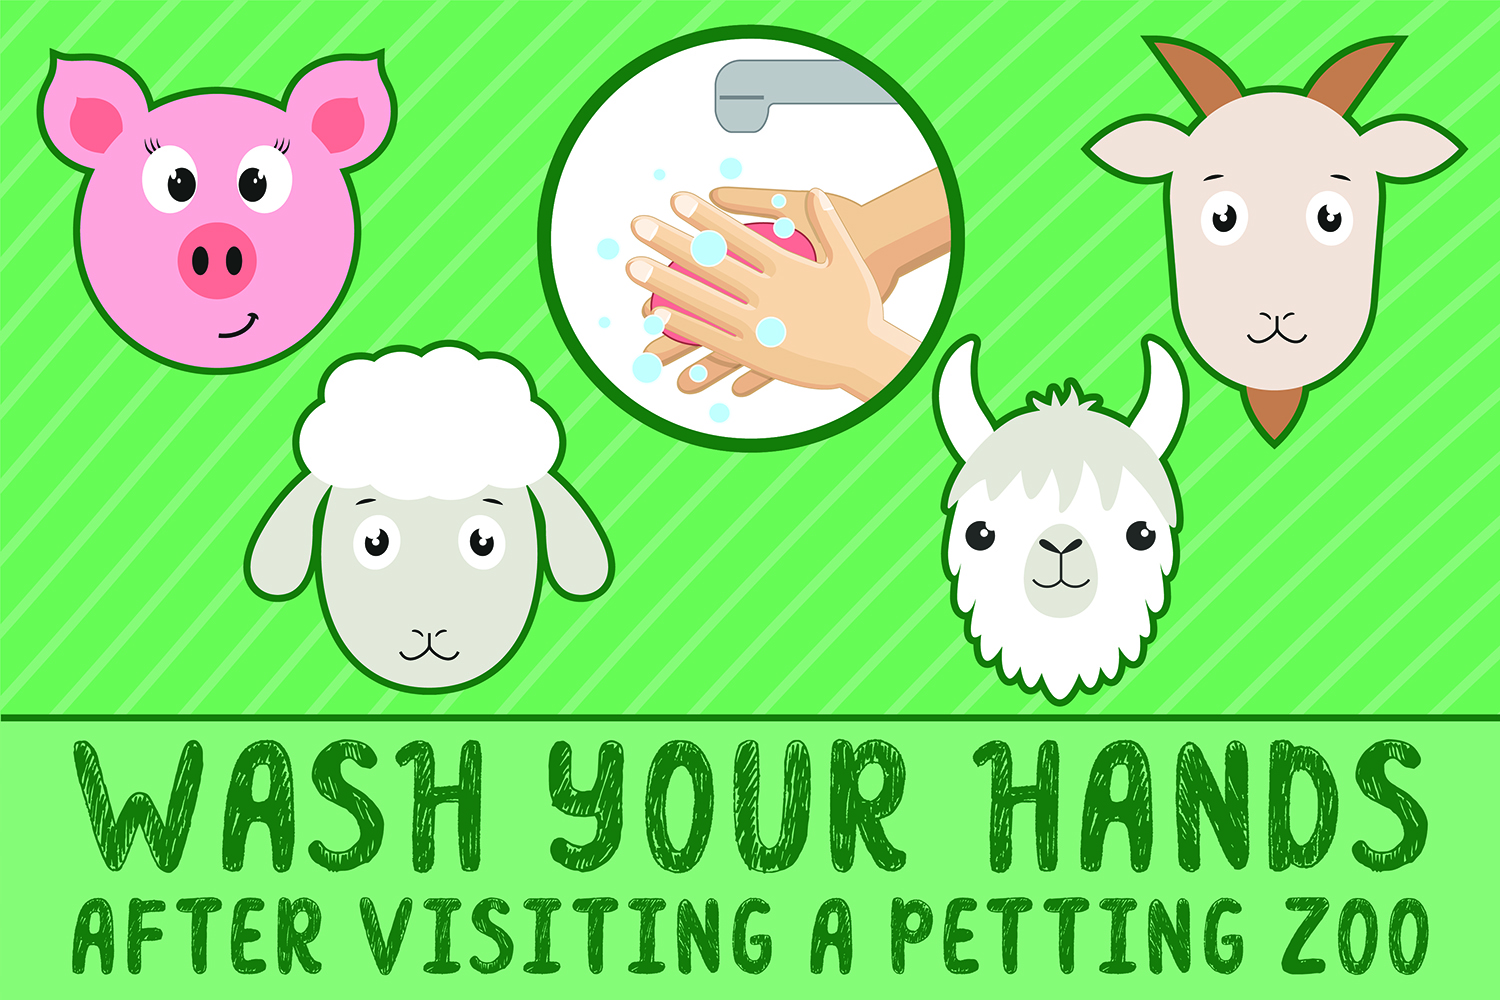 Wash Your Hands After Visiting A Petting Zoo sticker